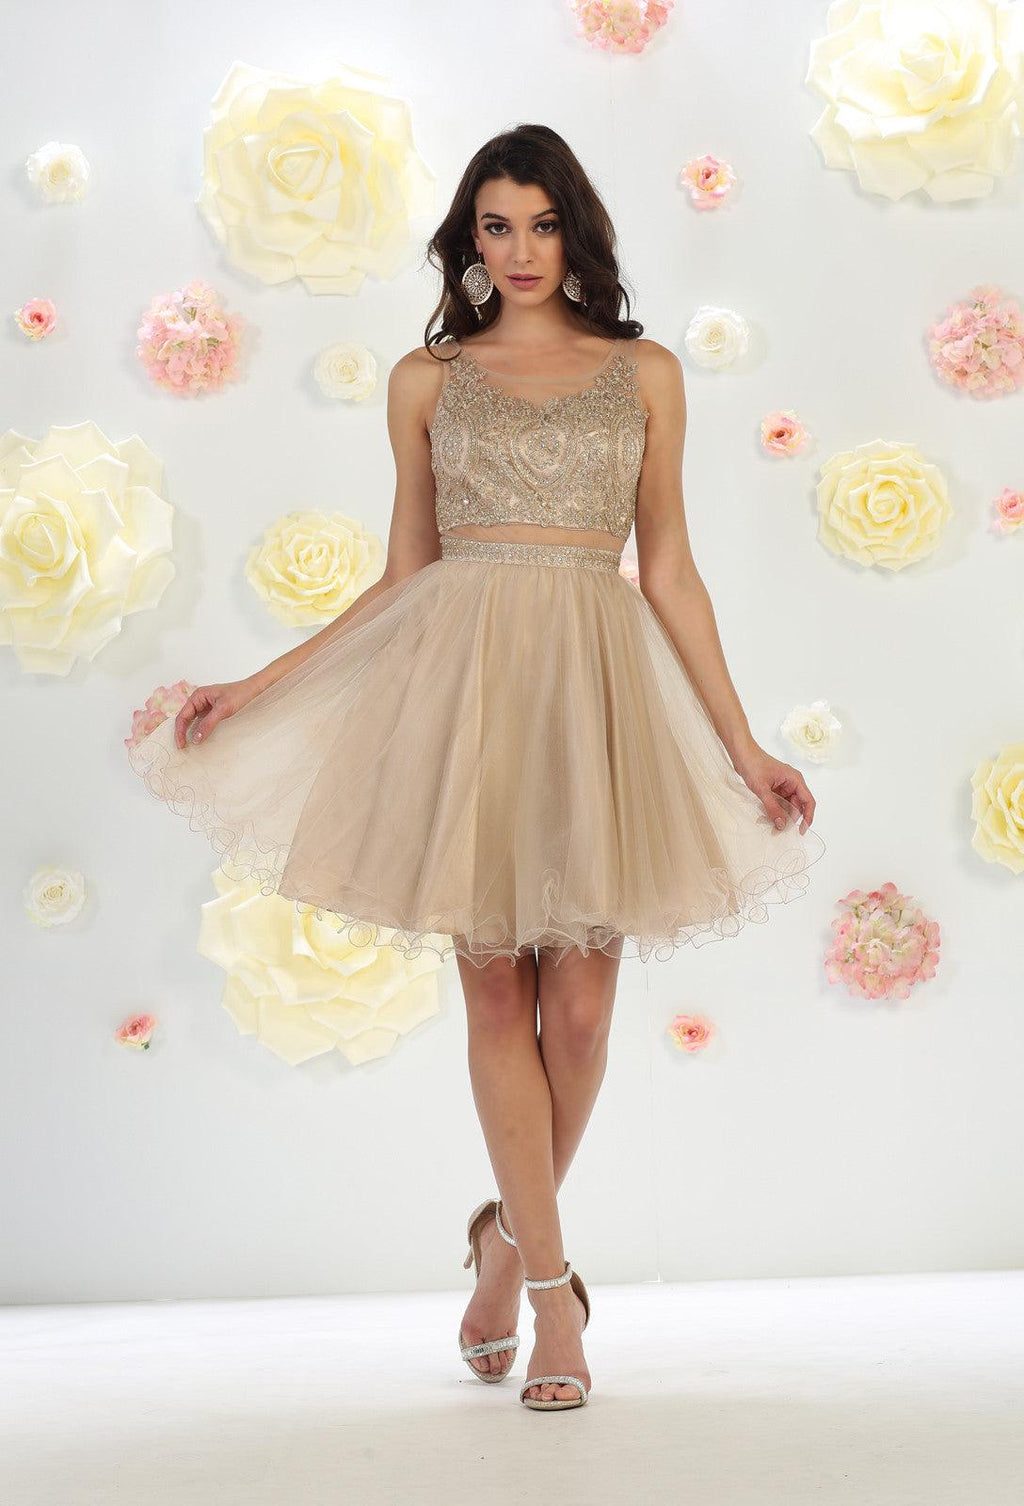 Short Prom Dress Homecoming - The Dress Outlet Mocha May Queen